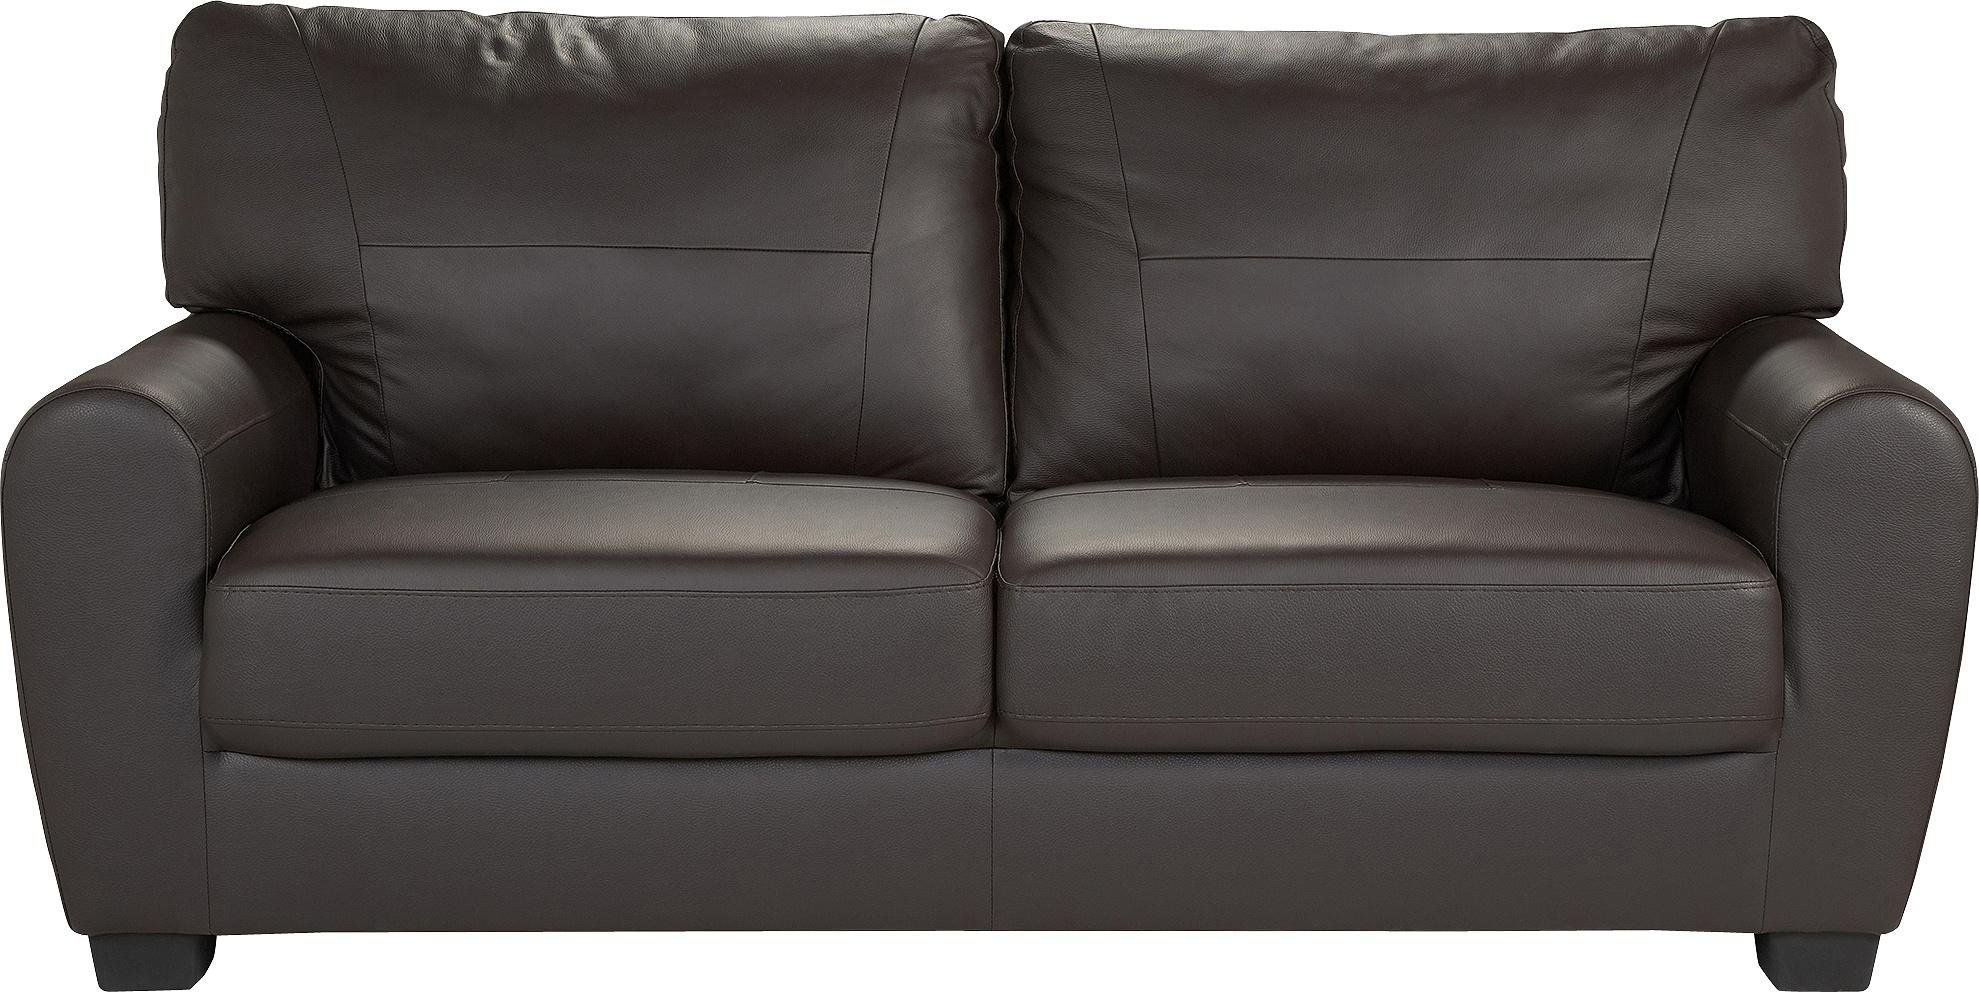 Argos Home Stefano 3 Seater Faux Leather Sofa - Chocolate